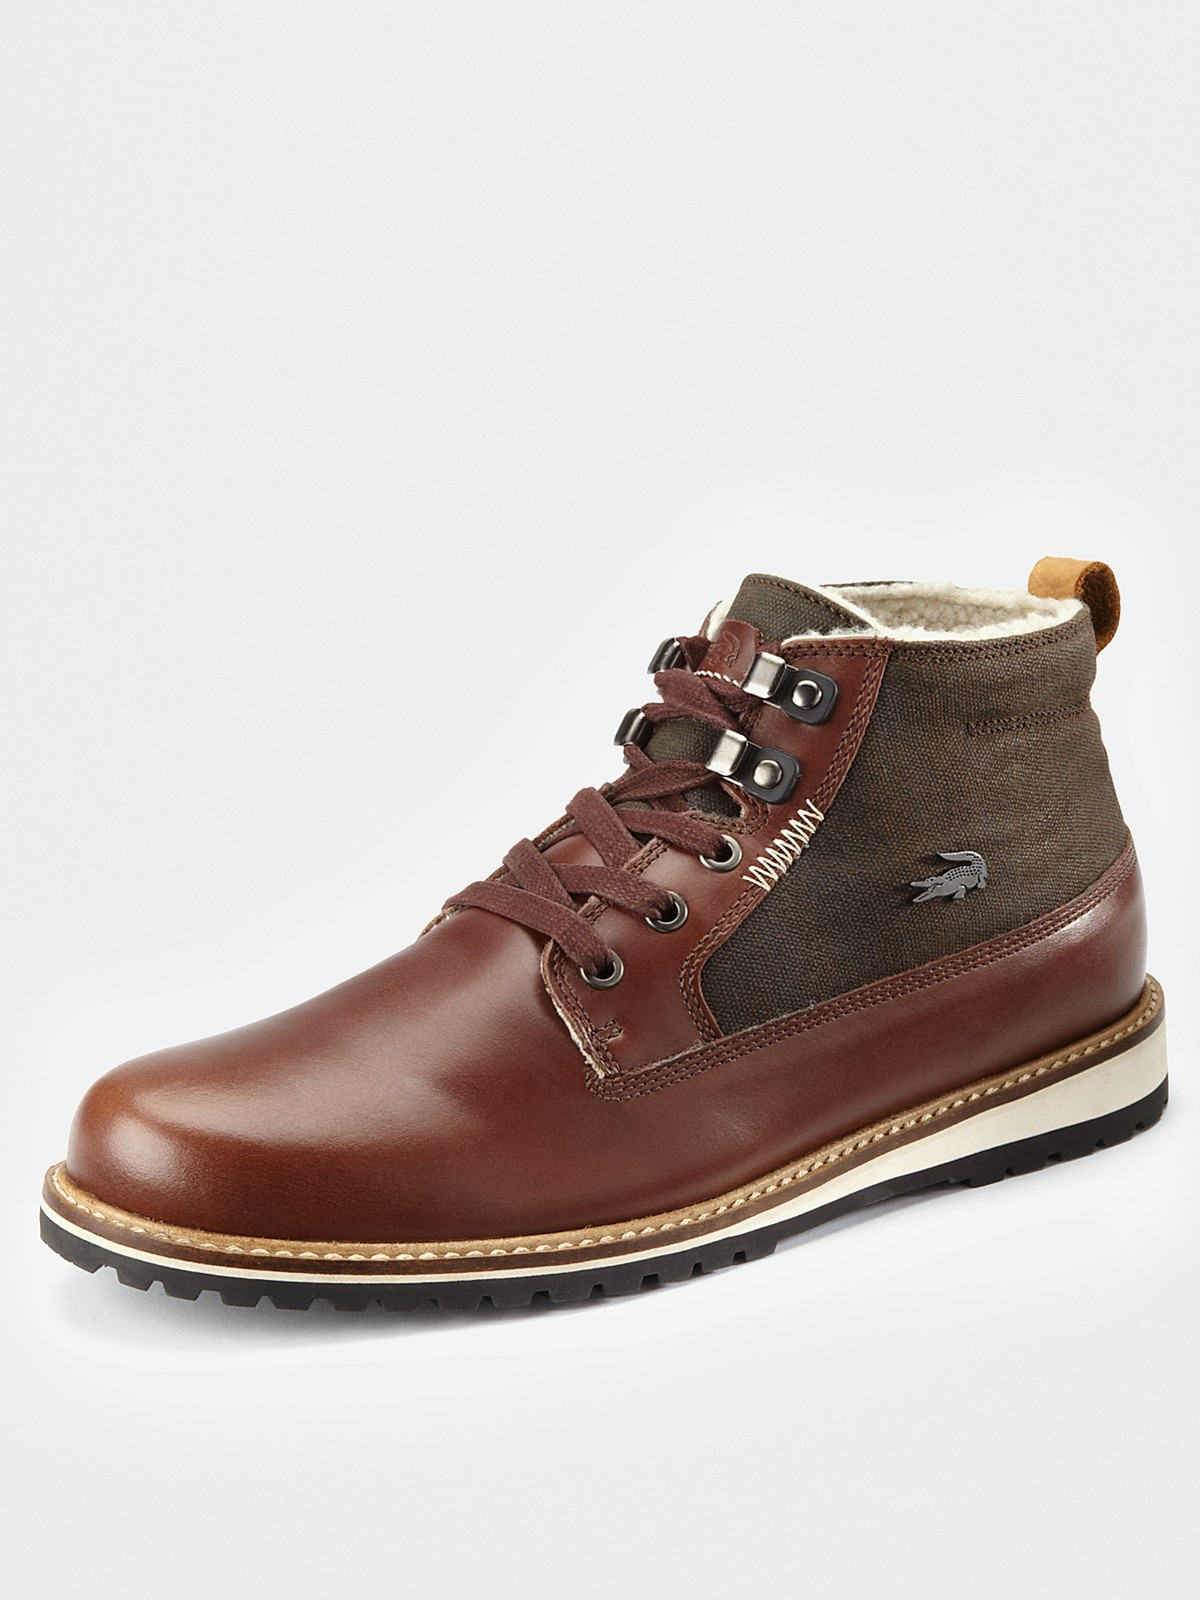 lacoste delevan 7 fur lined mens boots in brown for